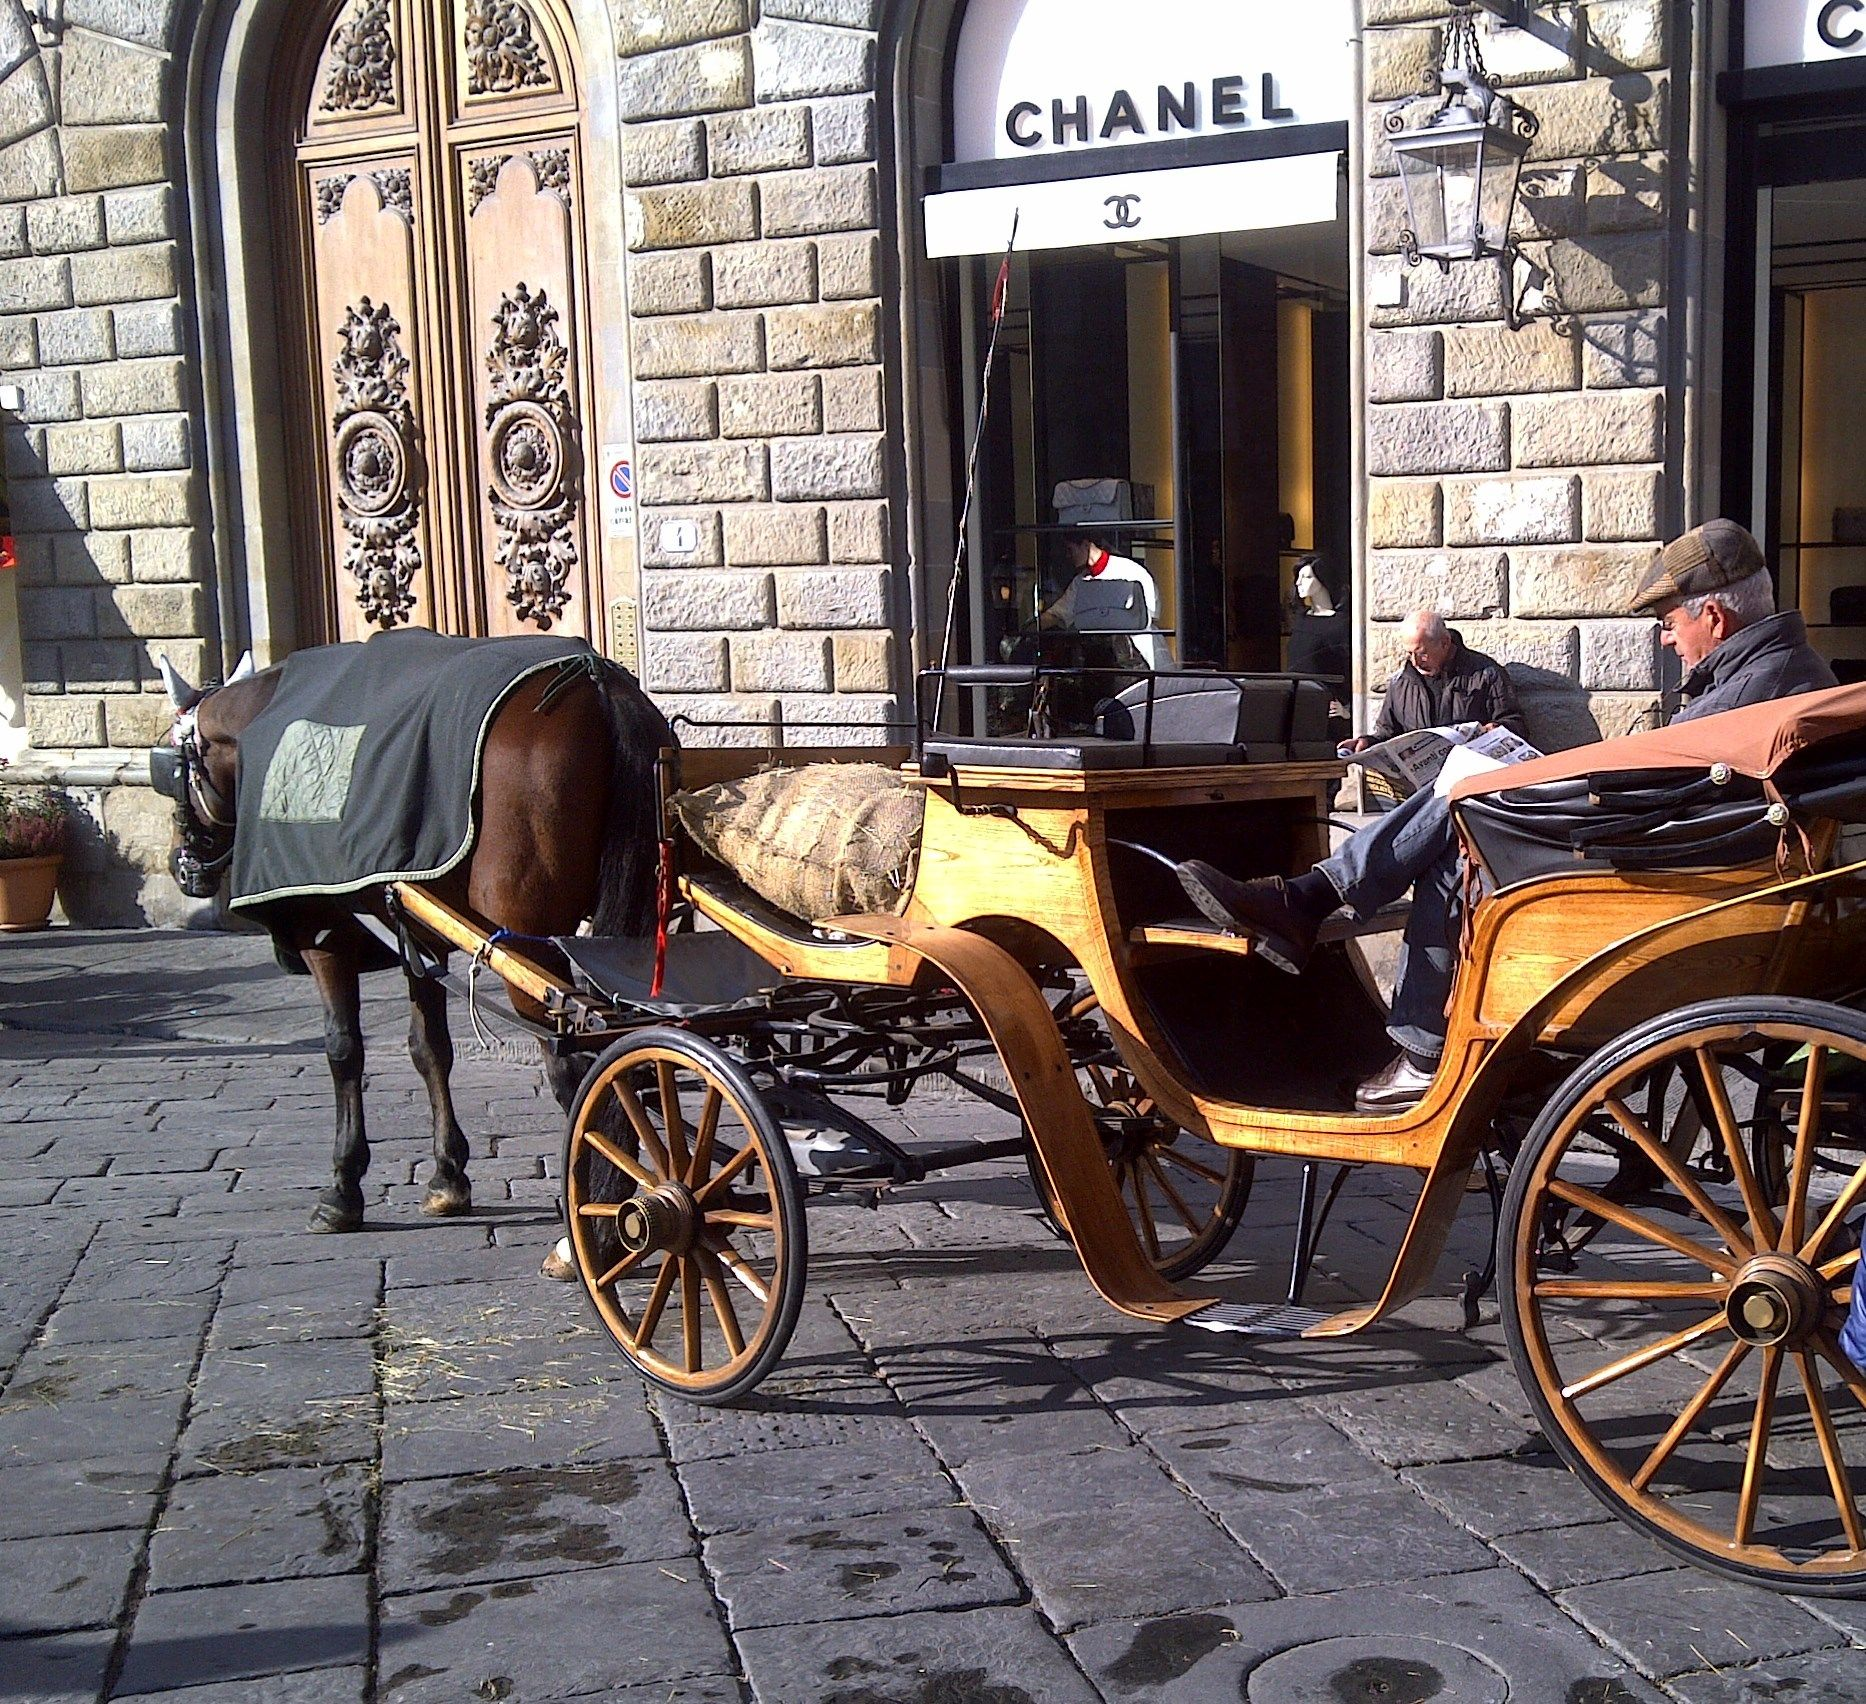 An horse ride or Chanel in Florence?